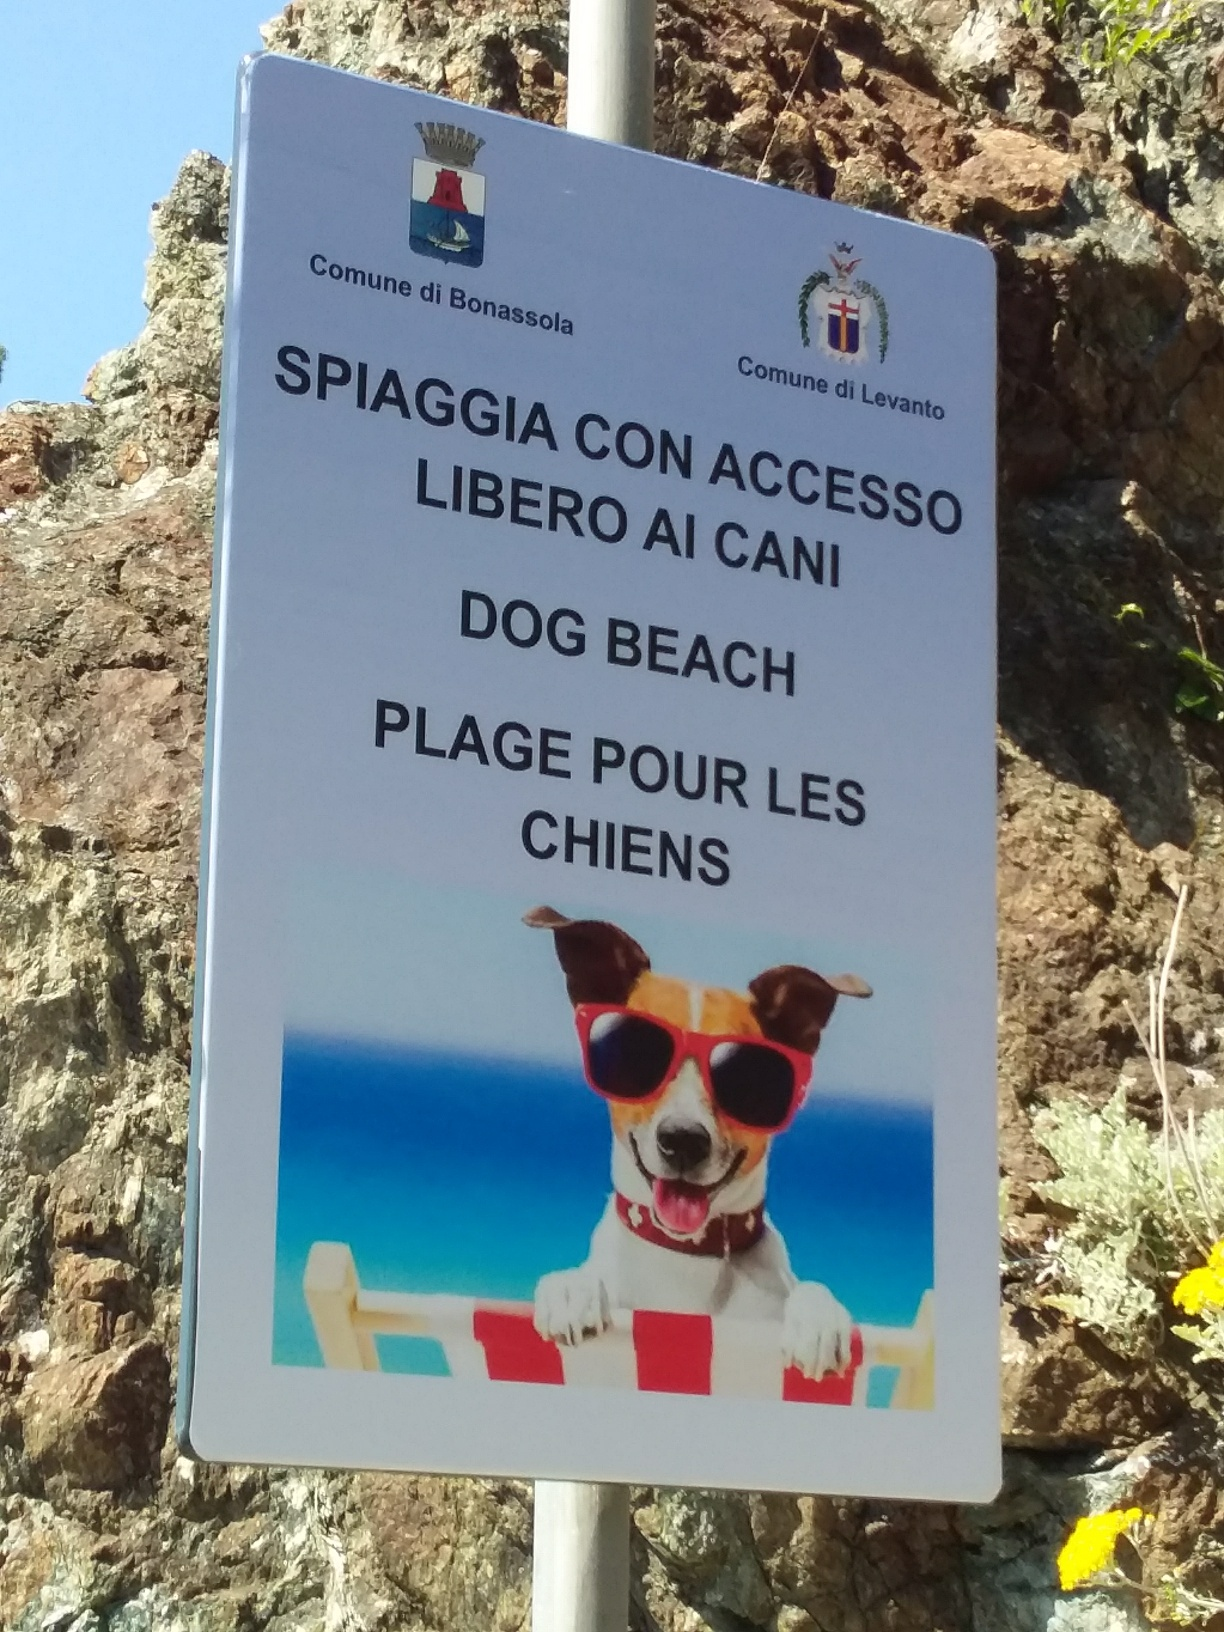 You have to love a town with a dog beach!